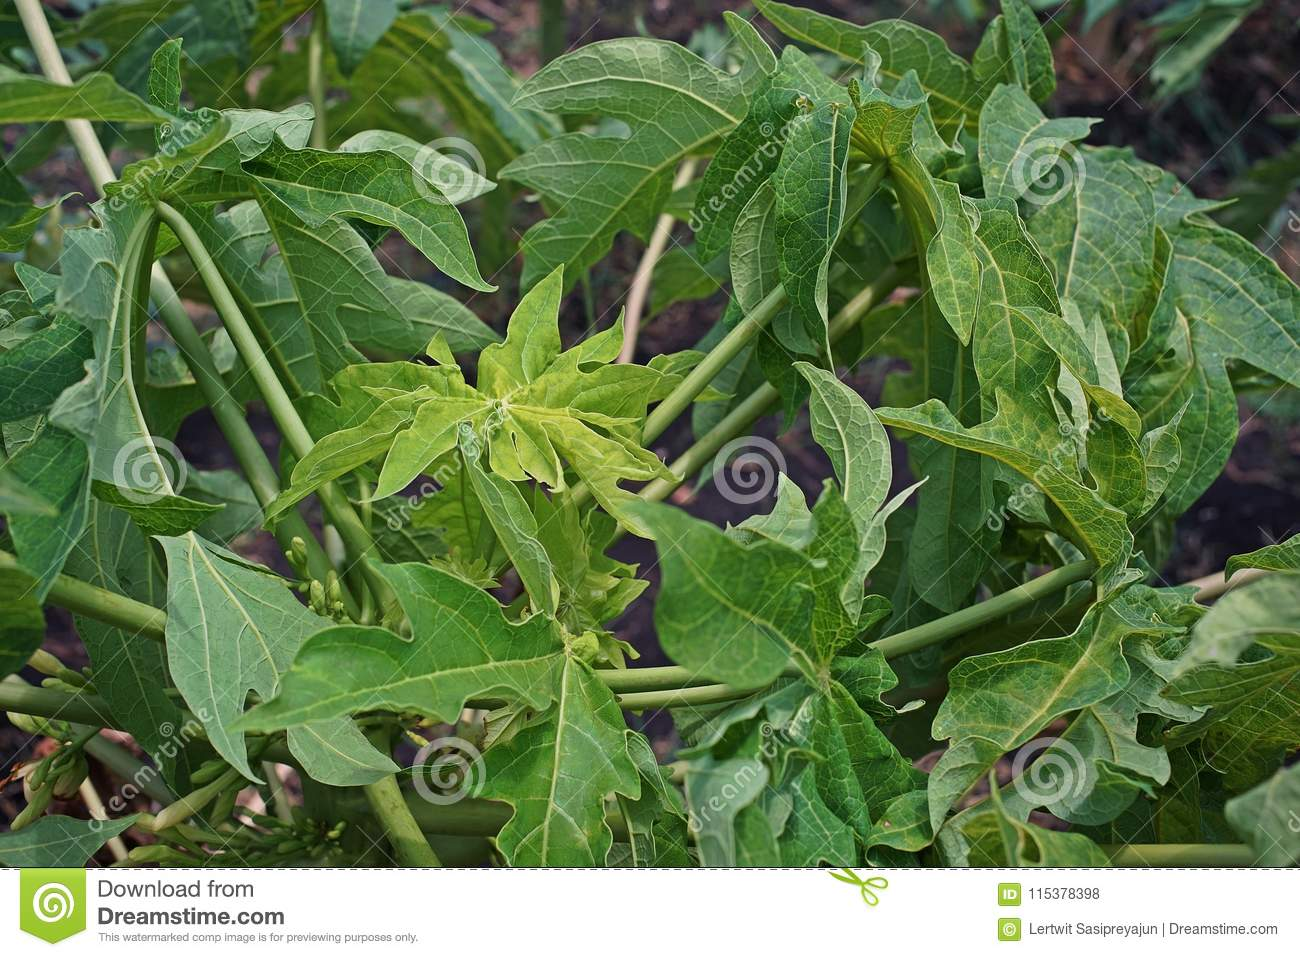 Papaya leaves yellowing and malformation from viruses infection